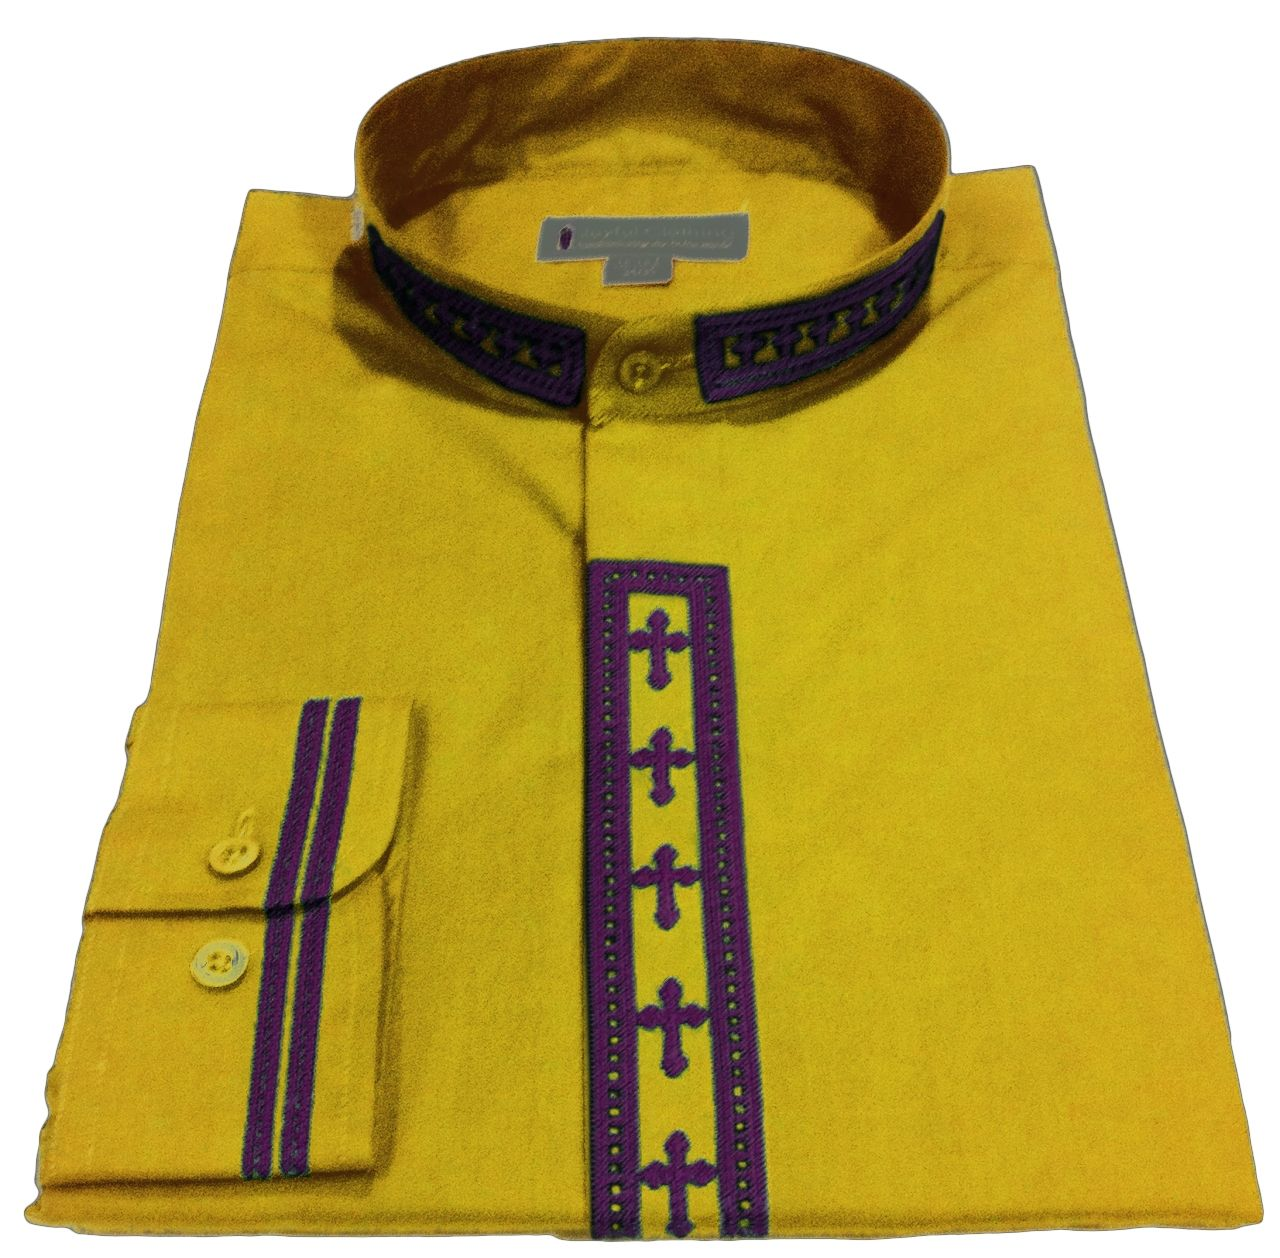 320. Men's Long-Sleeve Clergy Shirt With Fine Embroidery - Gold/Purple